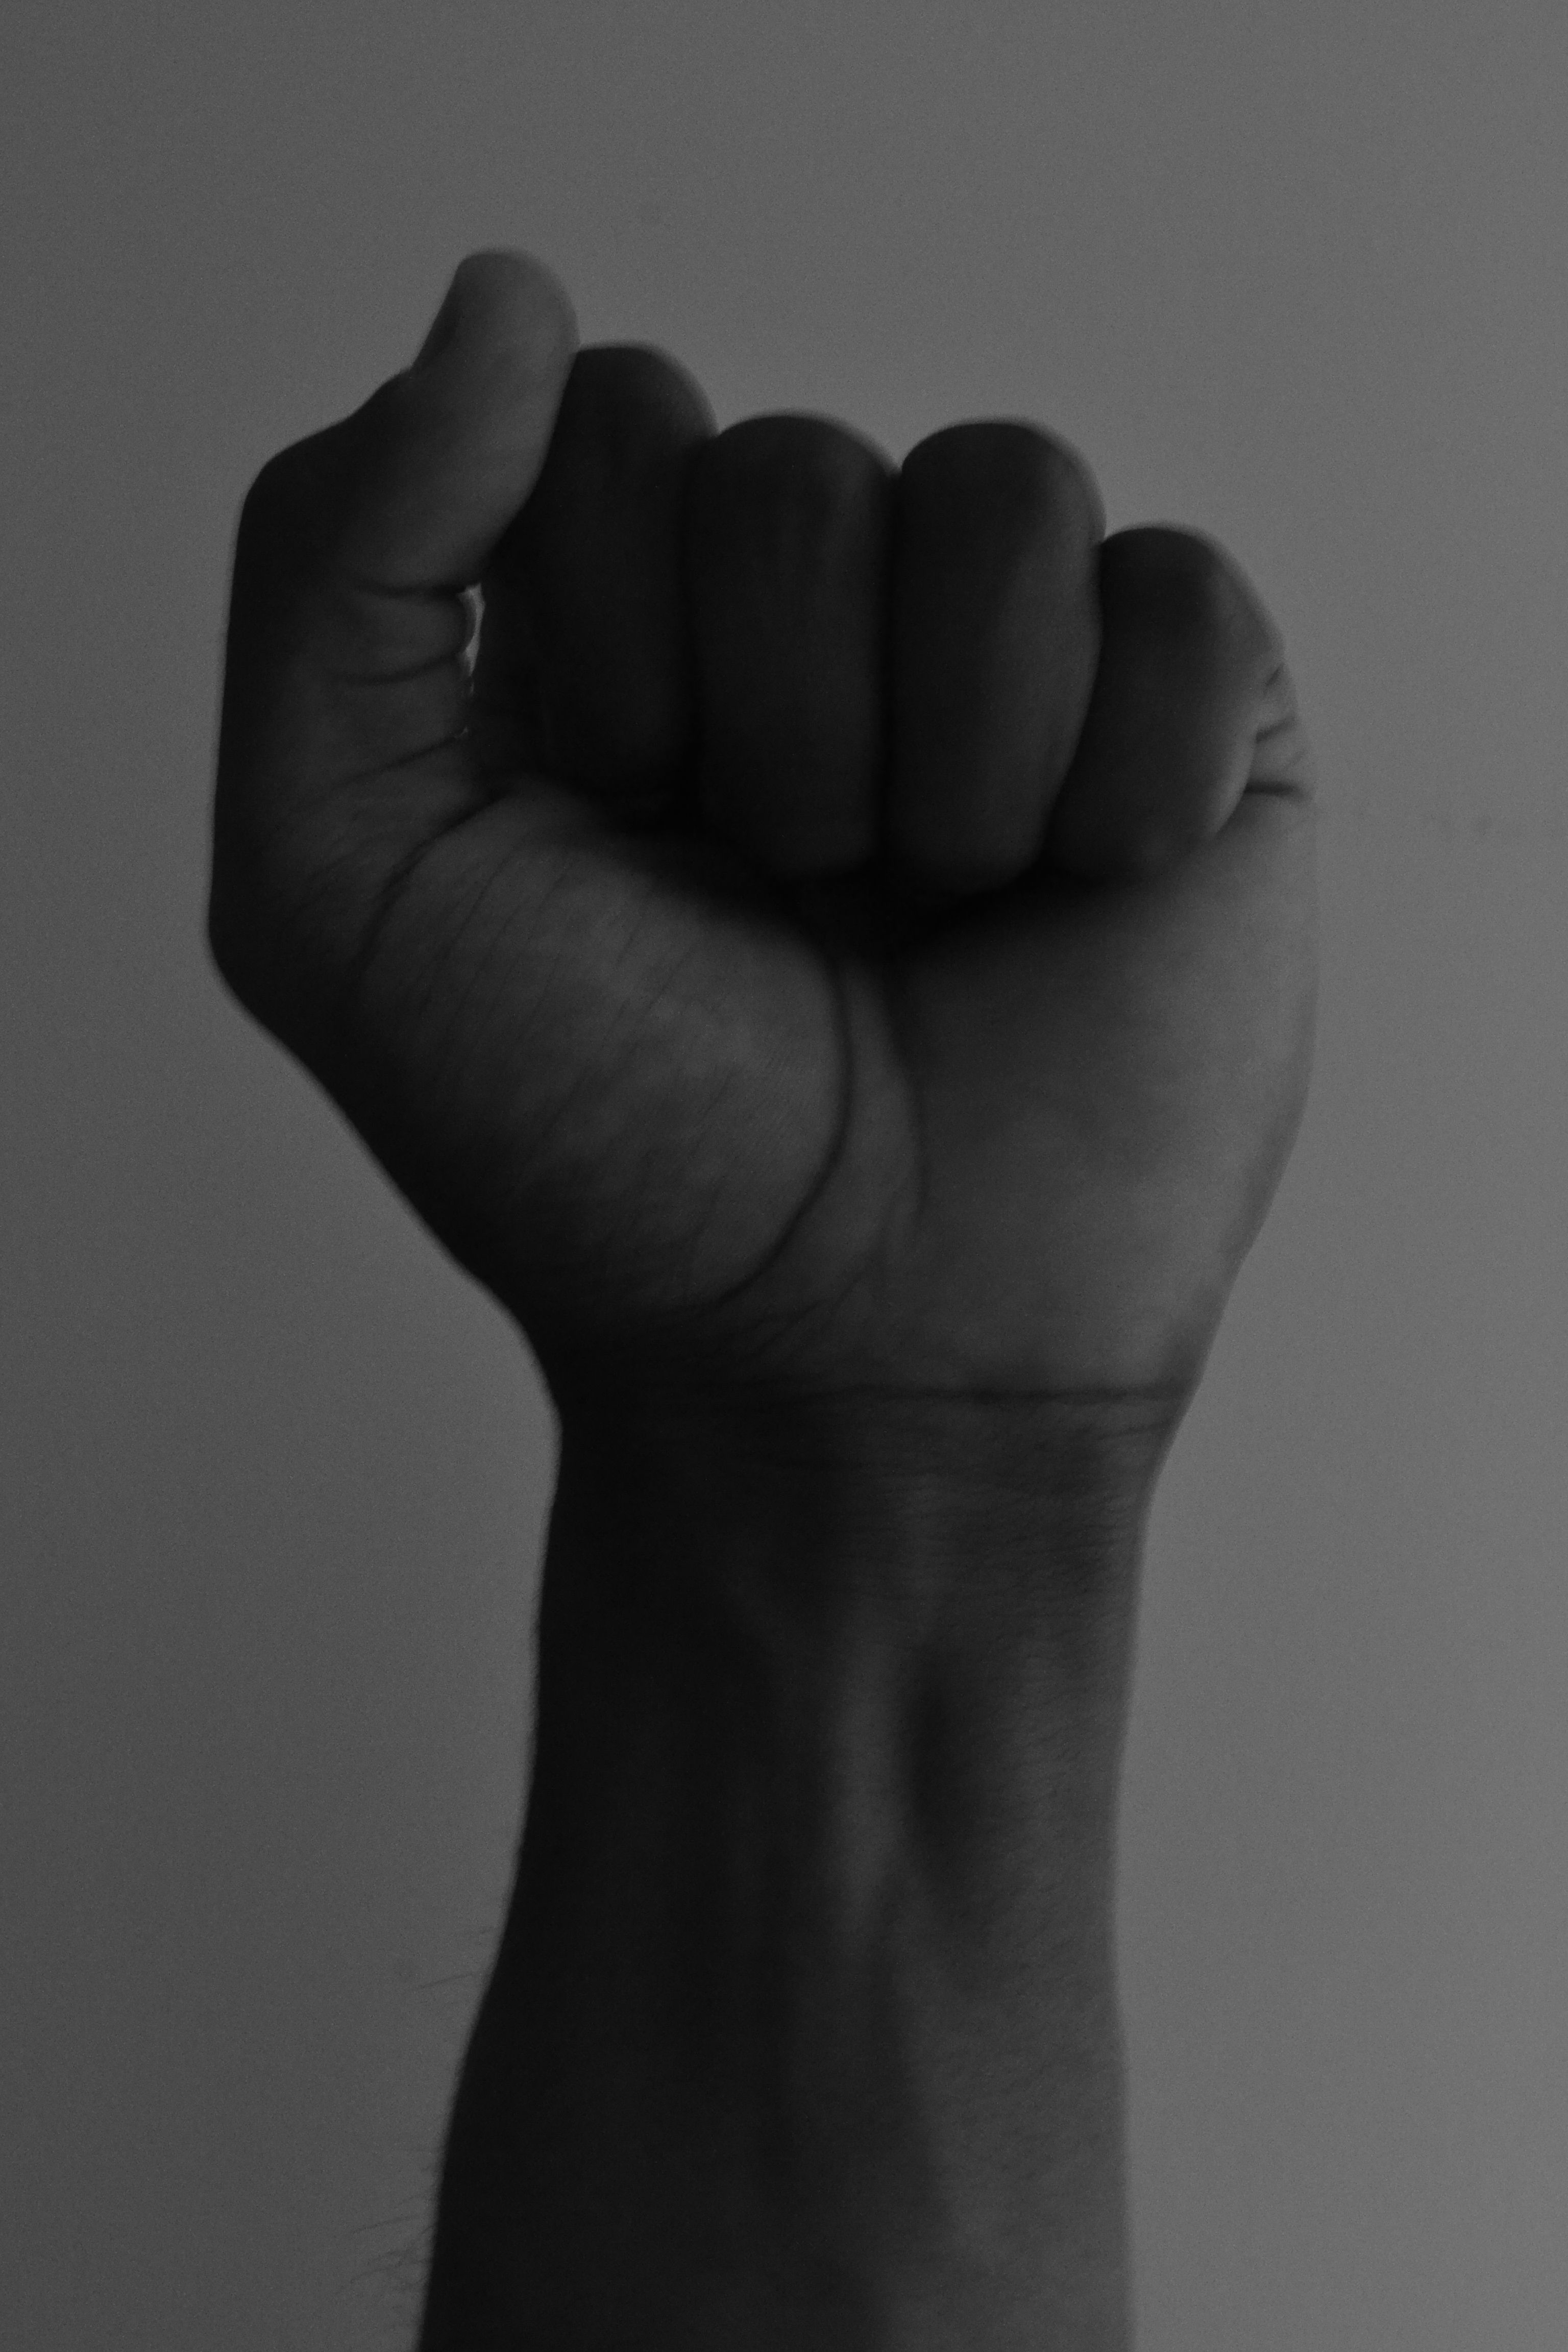 Communicating a Concept This image of a black fist is a